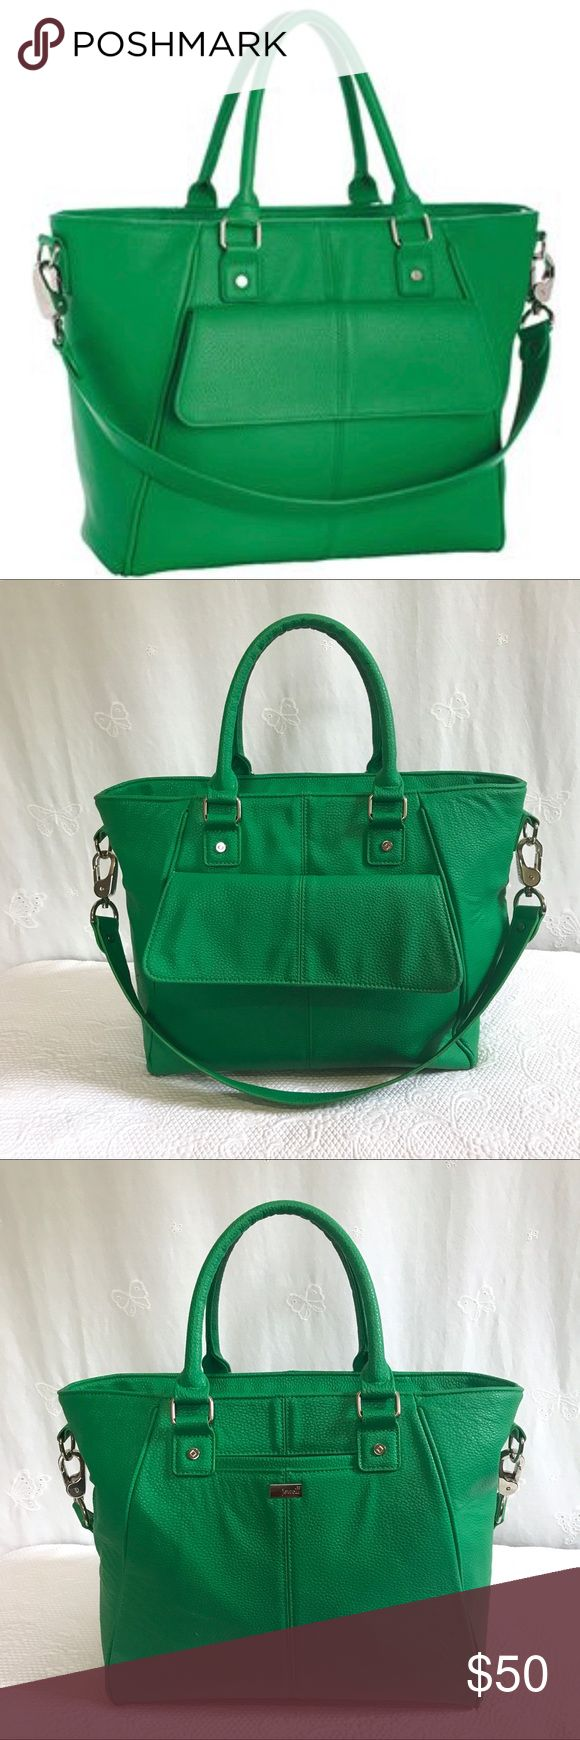 """Jewell By Thirty One • Diamond District Large Bag Excellent used condition. Gatsby's Green pebbled bag in large. Front slip pocket for cell phone. Large back flap pocket that snaps closed. Zip closure. Handle drop is approximately 6"""". Strap drop is approximately 12"""". Interior has Signature print lining with 3 slip pockets. Interior could use a cleaning but in excellent used condition. No marks to mention. Jewell By Thirty One Bags Satchels"""